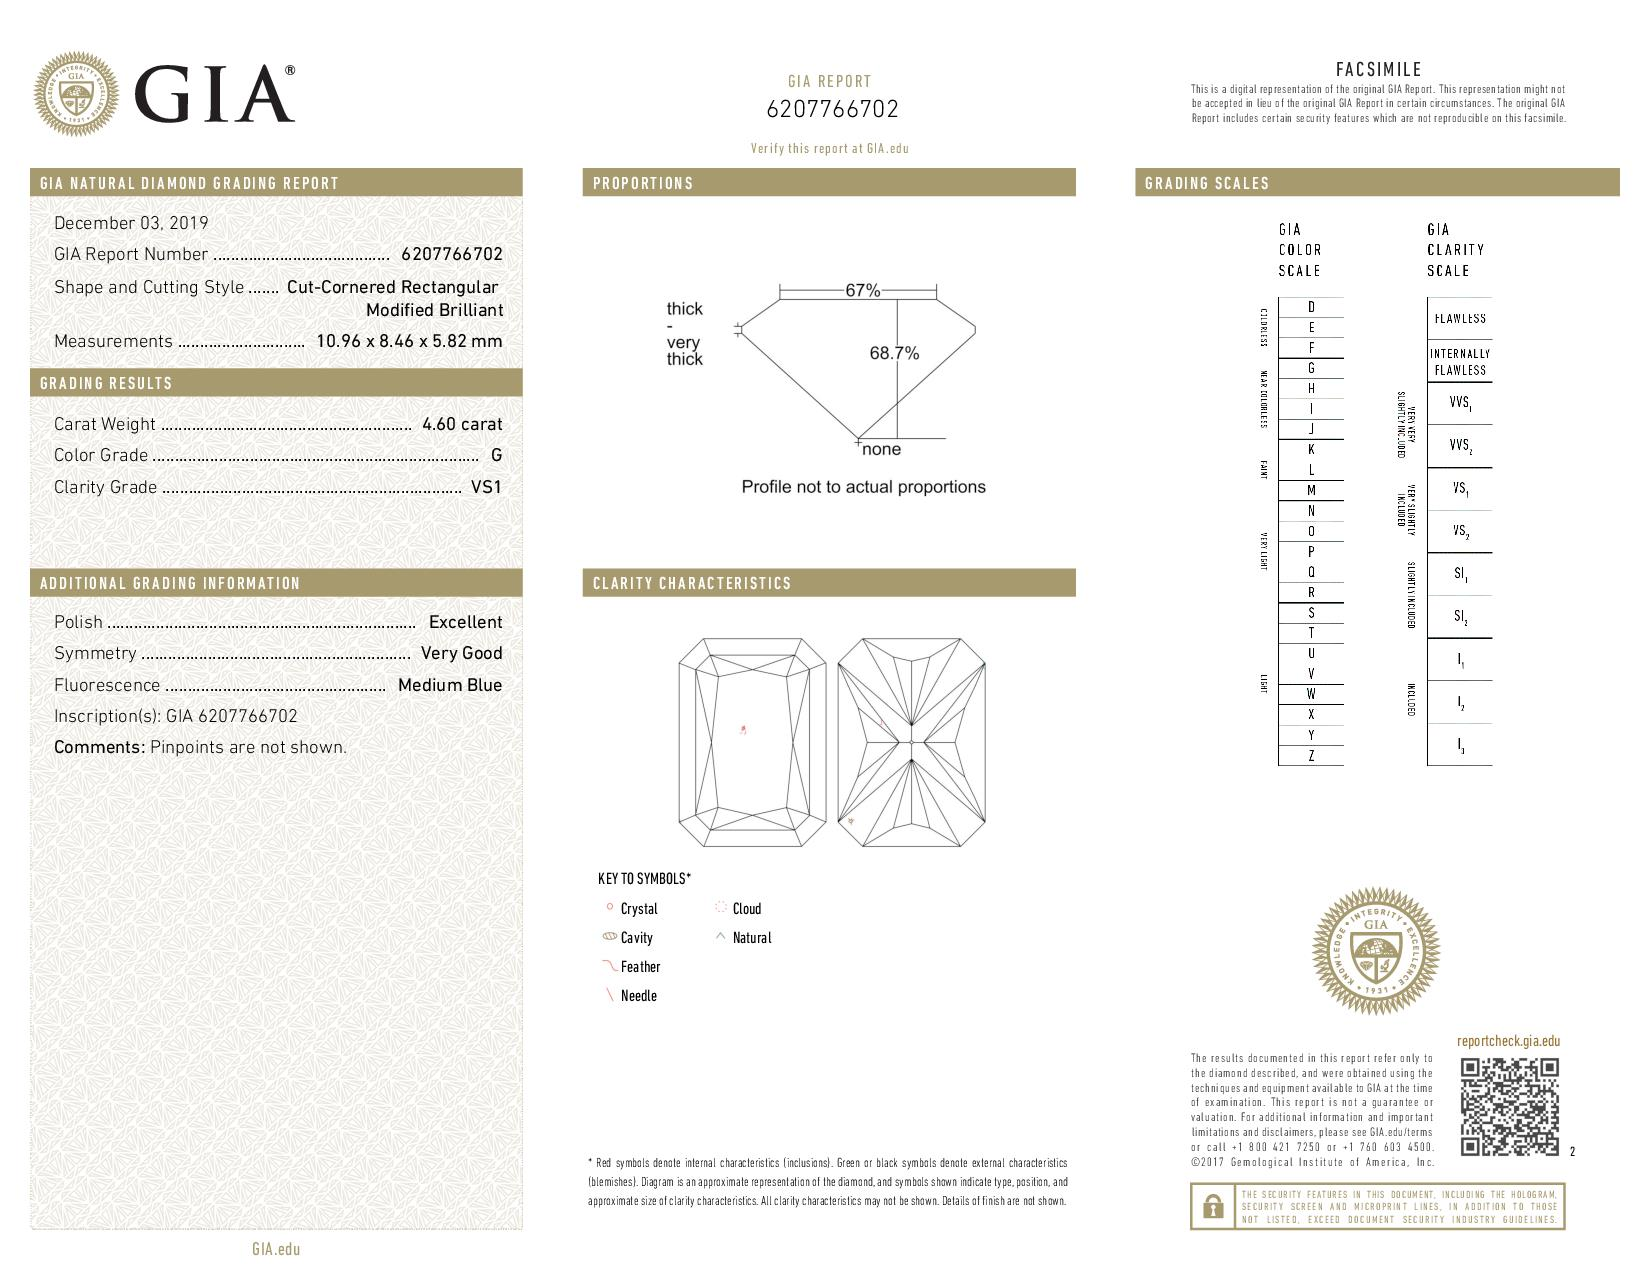 This is a 4.60 carat radiant shape, G color, VS1 clarity natural diamond accompanied by a GIA grading report.